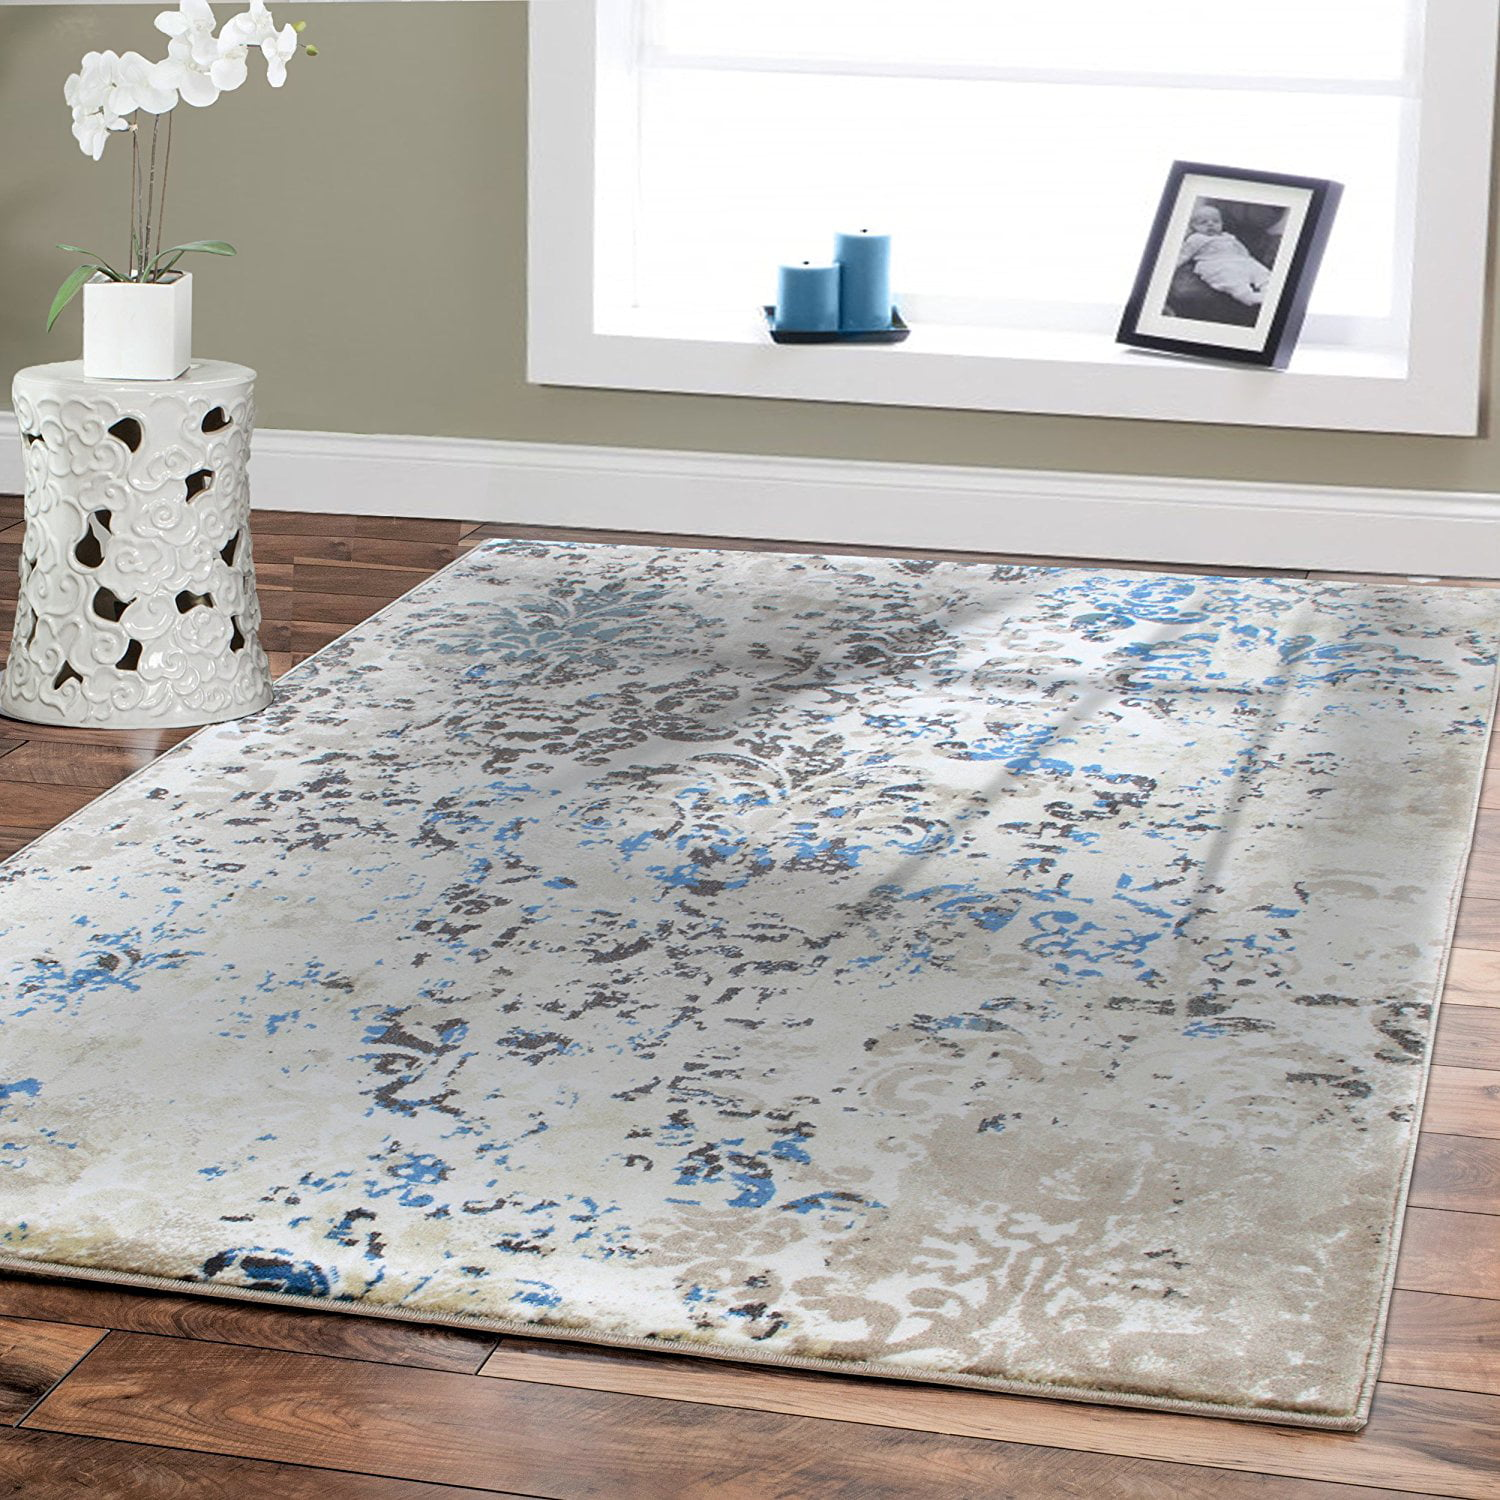 Luxury High Quality Rugs For Living Room 8x11 Cream Blue Dynamix